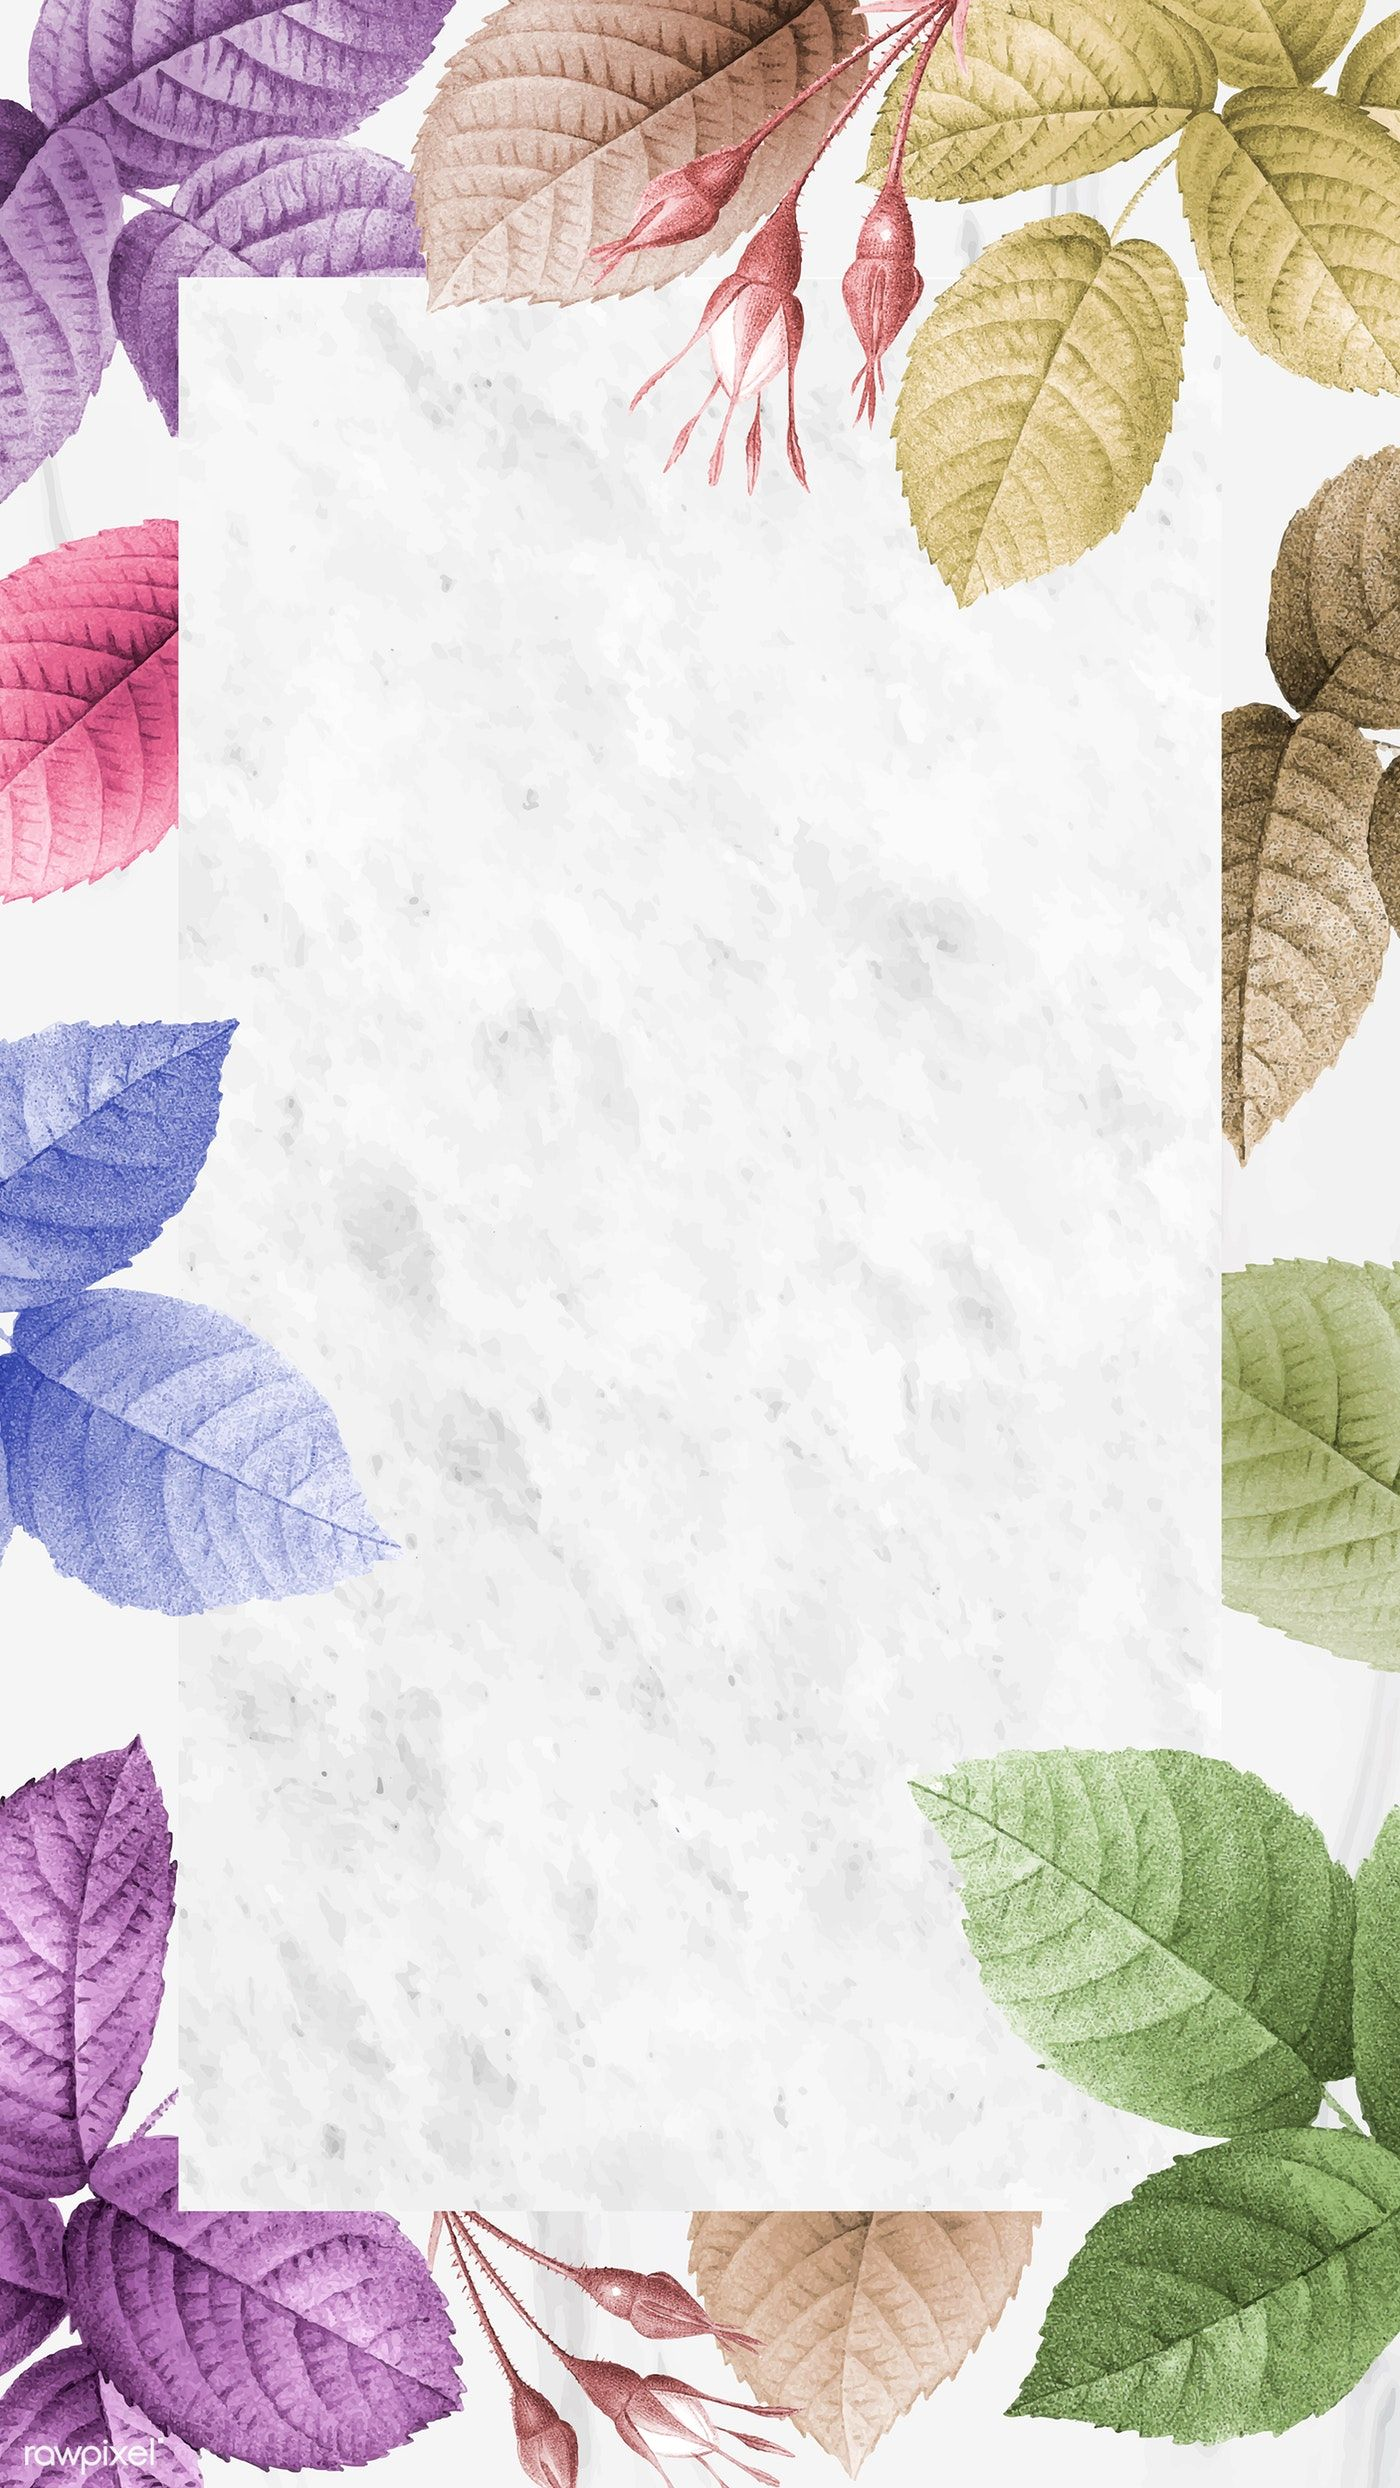 Download premium vector of Colorful foliage pattern mobile